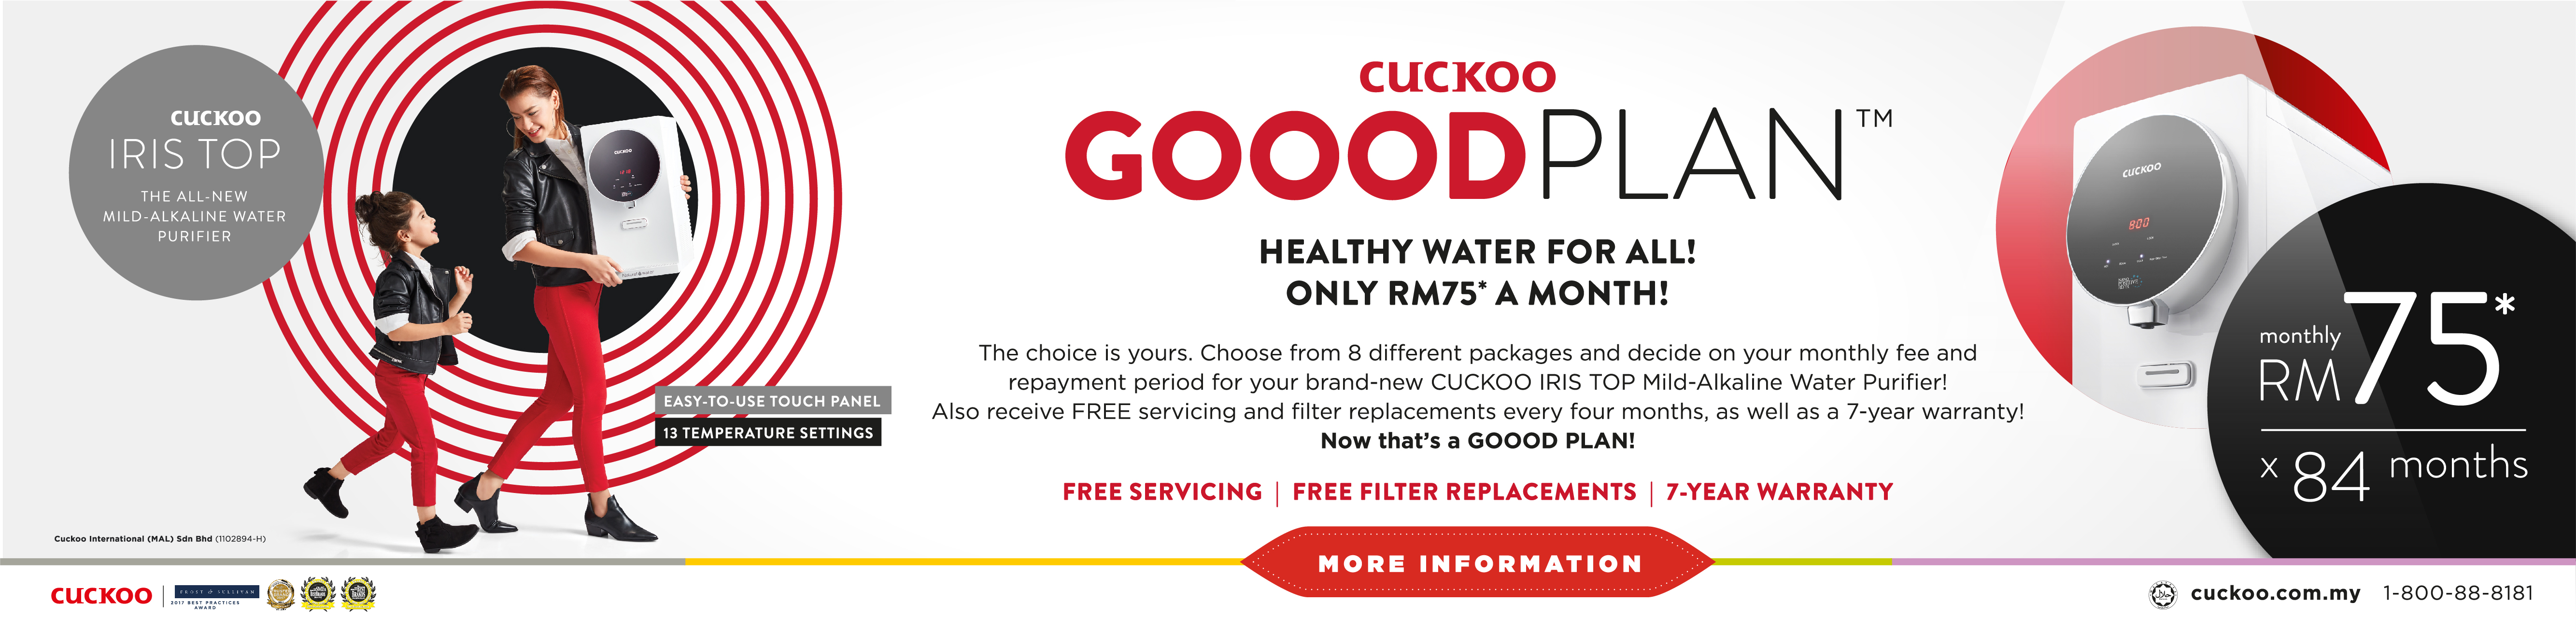 Cuckoo Only RM75* A Month